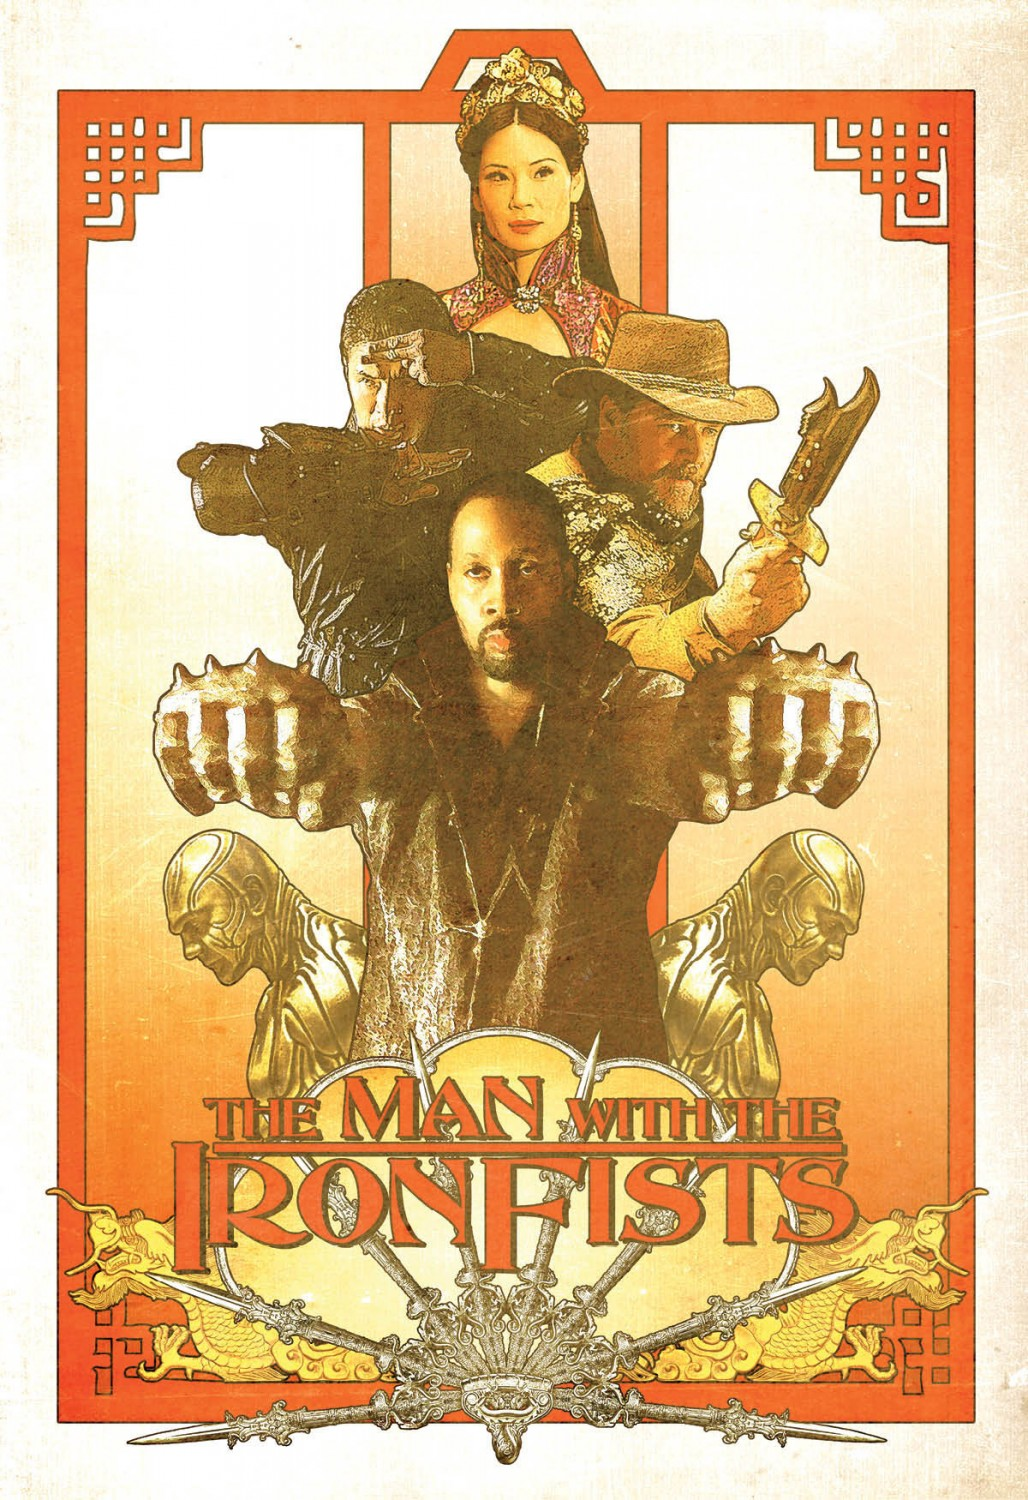 http://3.bp.blogspot.com/-s712HQsrnss/UJZYHo6j_eI/AAAAAAABGPY/JAABeZnjm0E/s1600/The_Man_with_the_Iron_Fists-RZA-Russell_Crowe-Lucy_Liu-Jamie_Chung-Poster.jpg